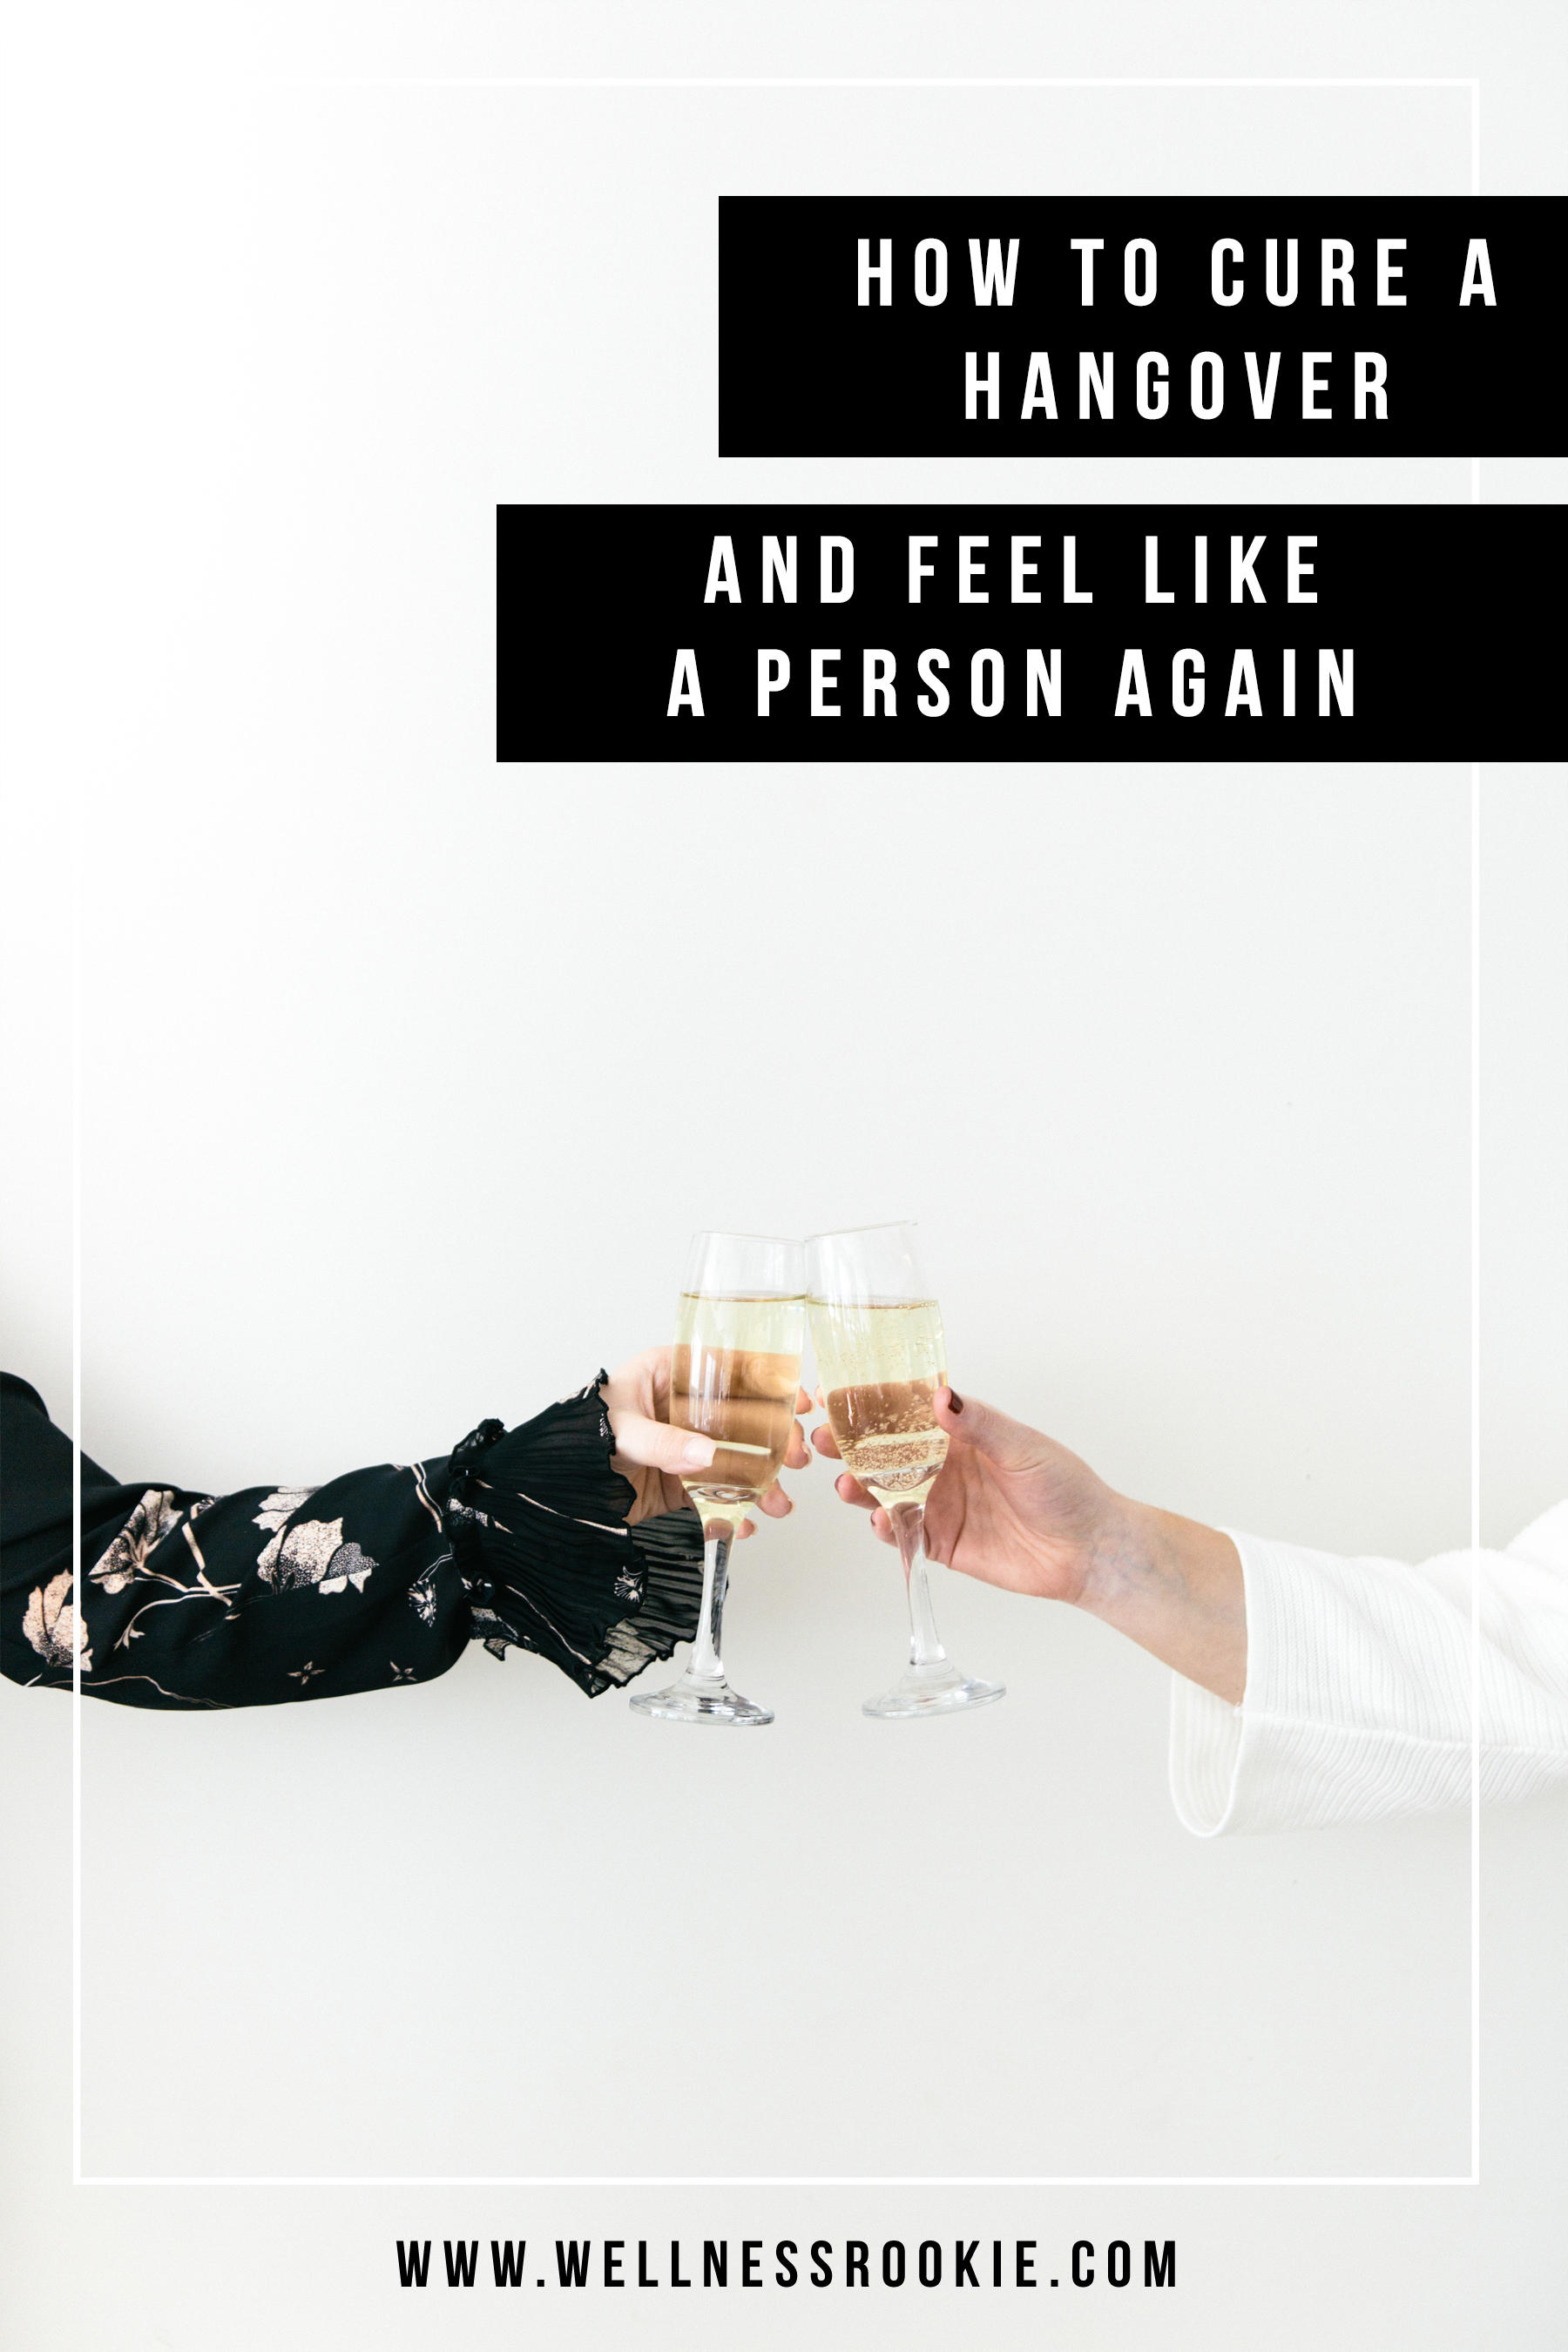 how to cure a hangover and feel better after a night of drinking, especially for new years eve or any celebration involving alcohol